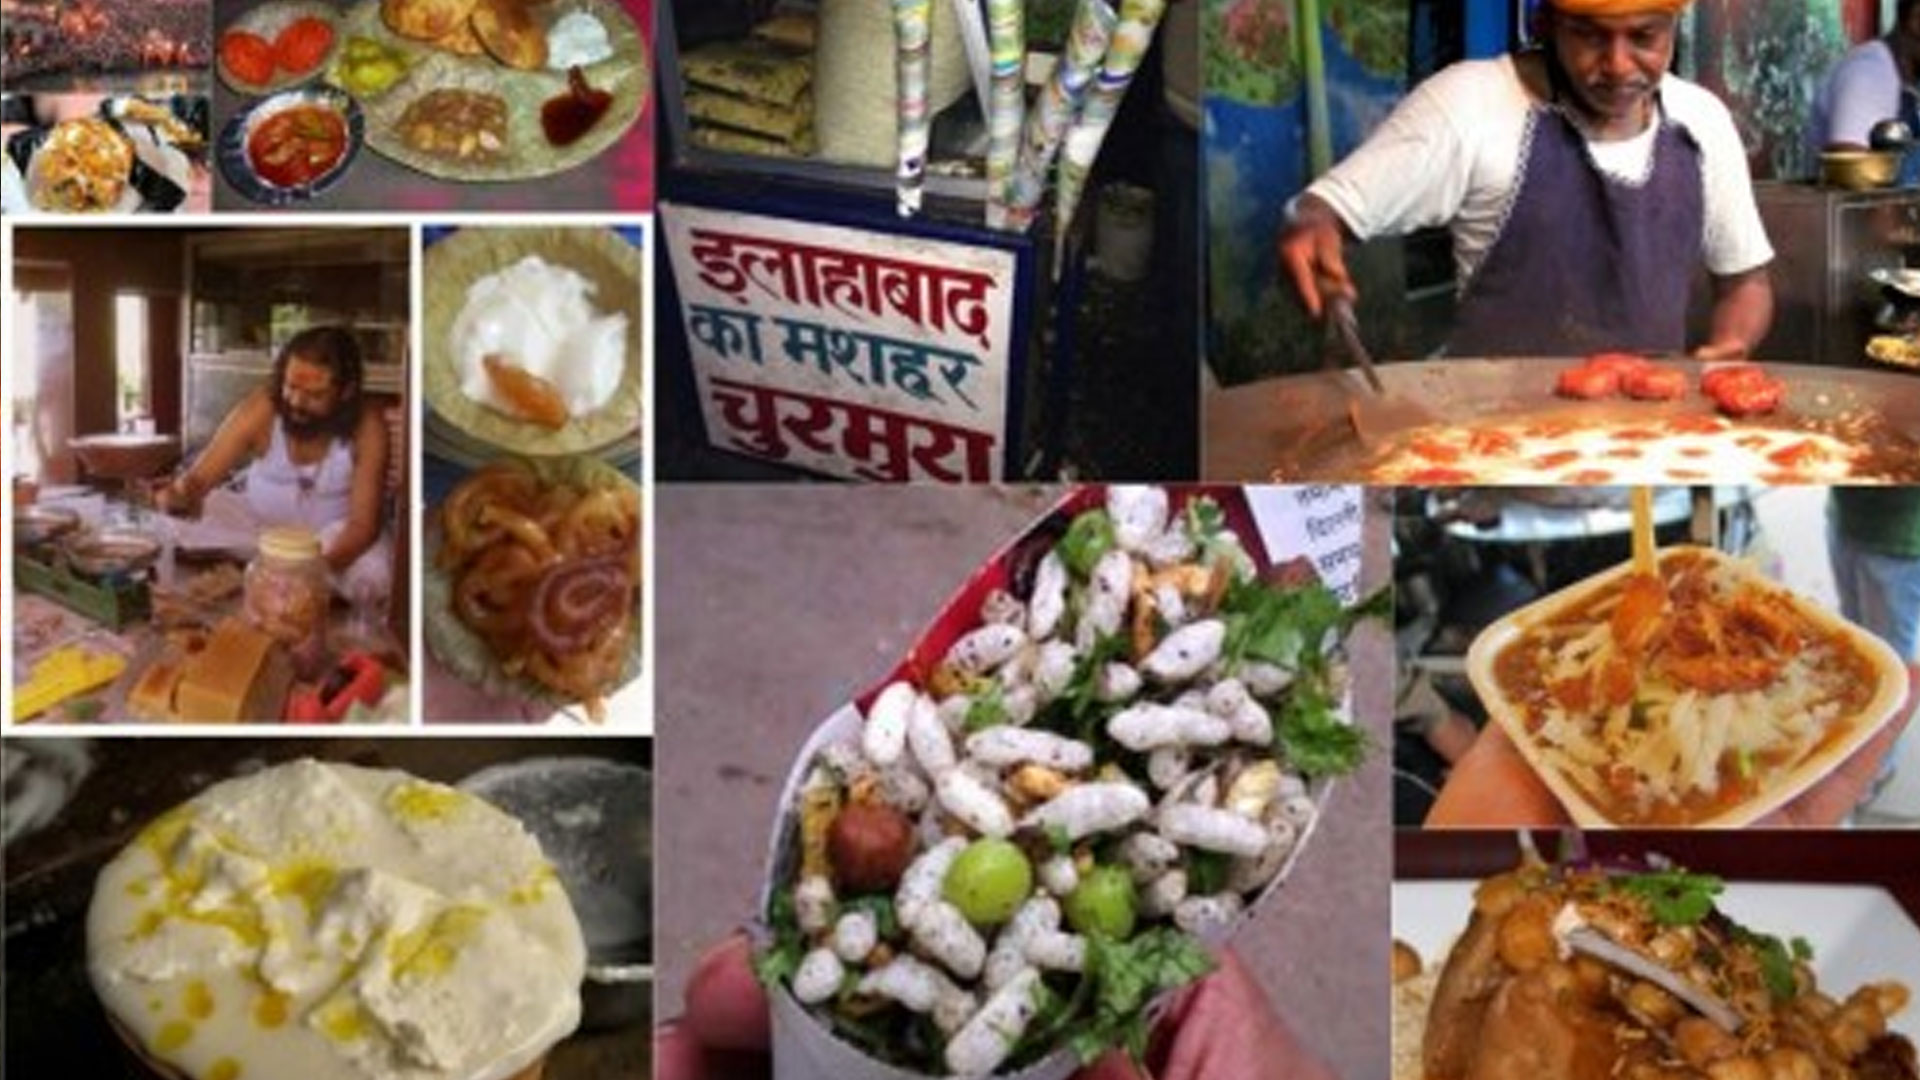 If-you-are-in-Prayagraj,-try-out-these-5-delicious-foods-that-defines-taste!